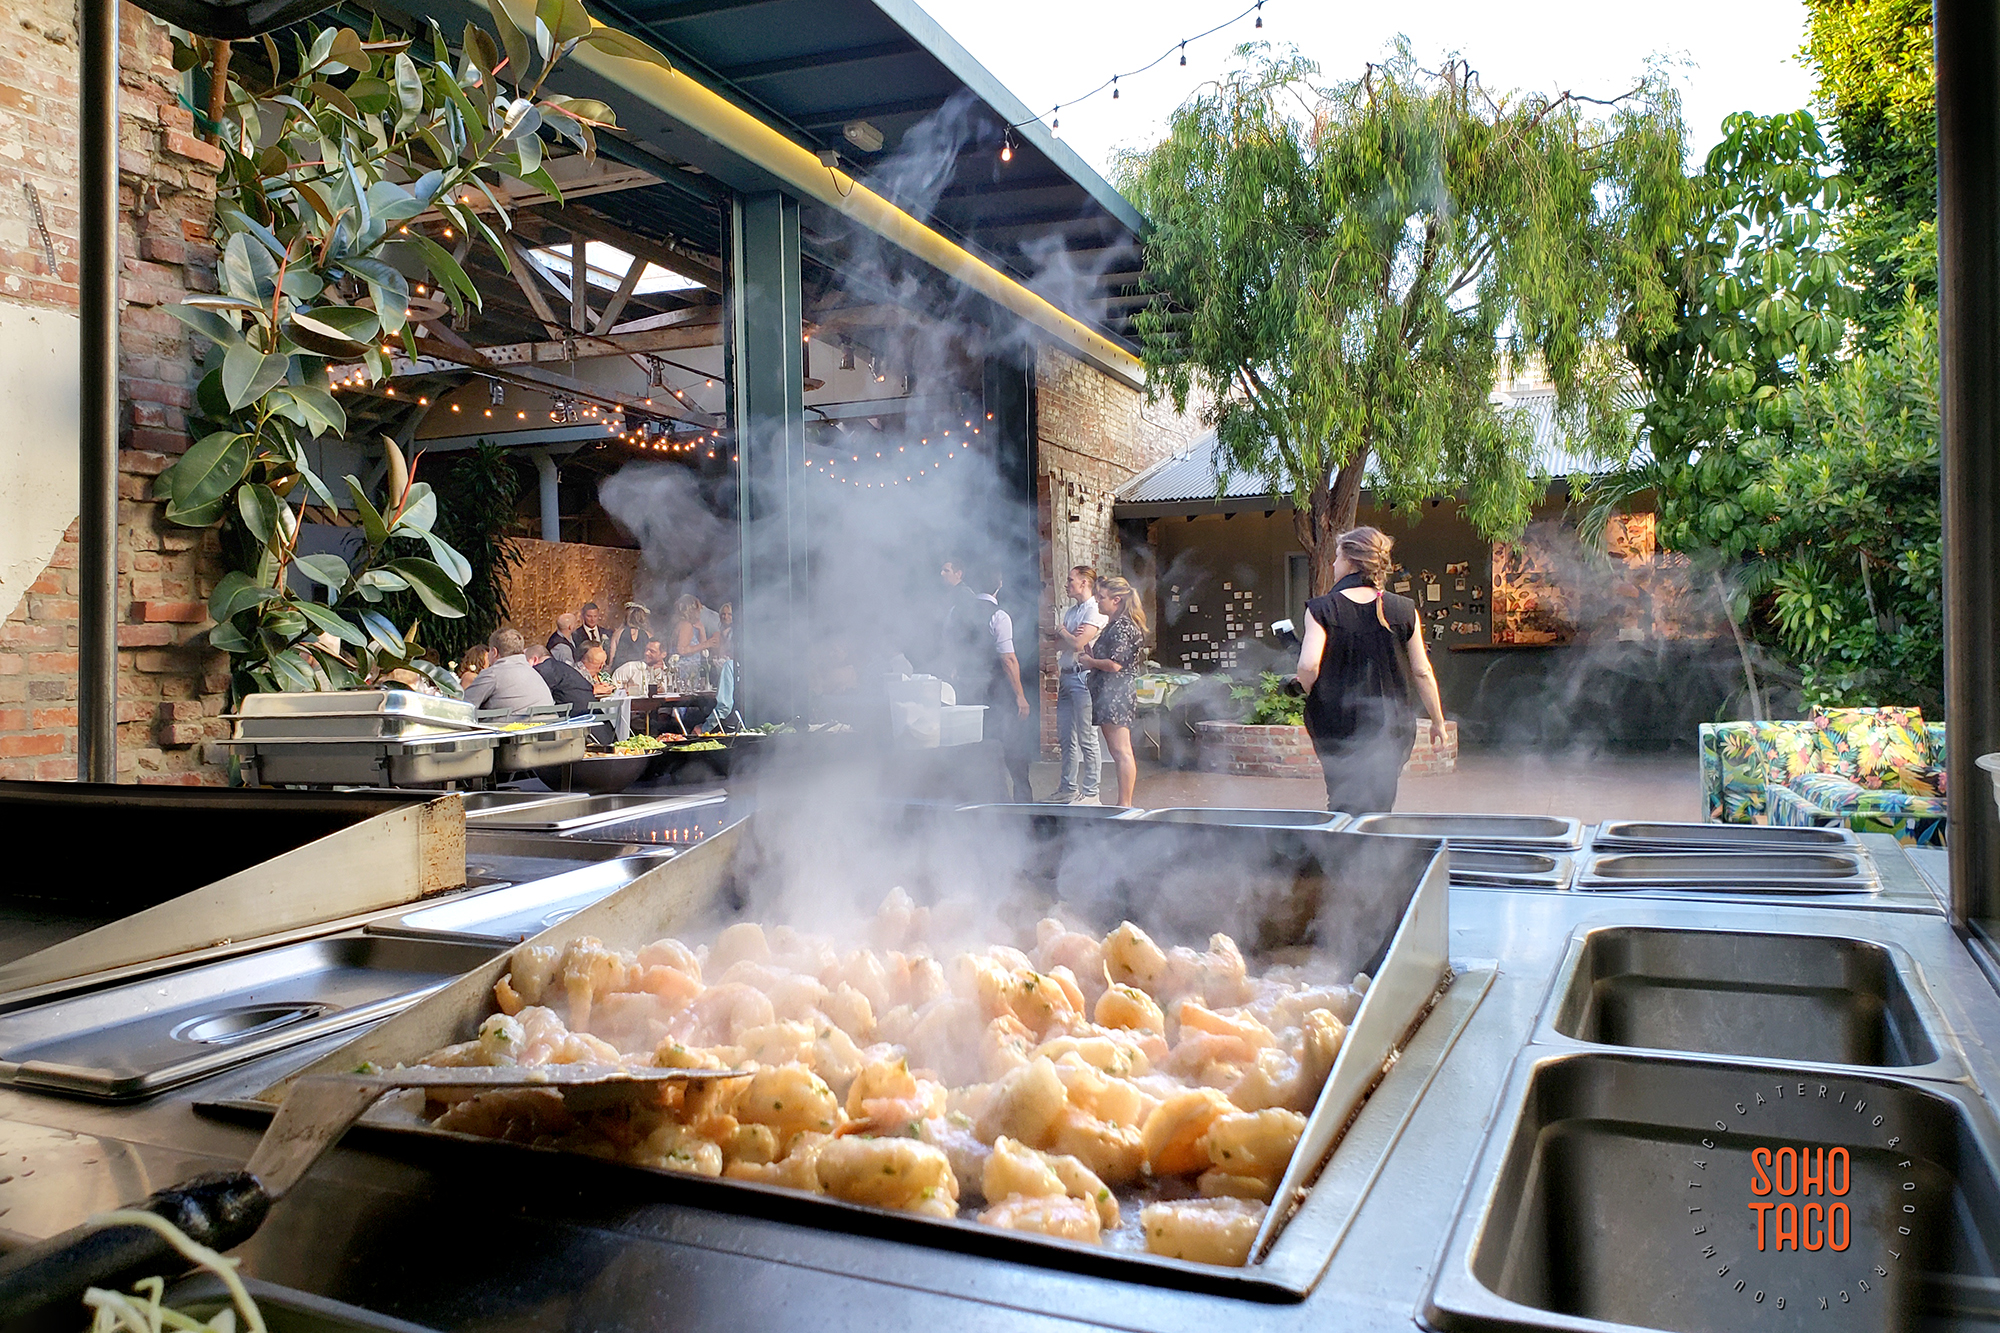 Taco Catering Considerations At The Millwick & Grilling